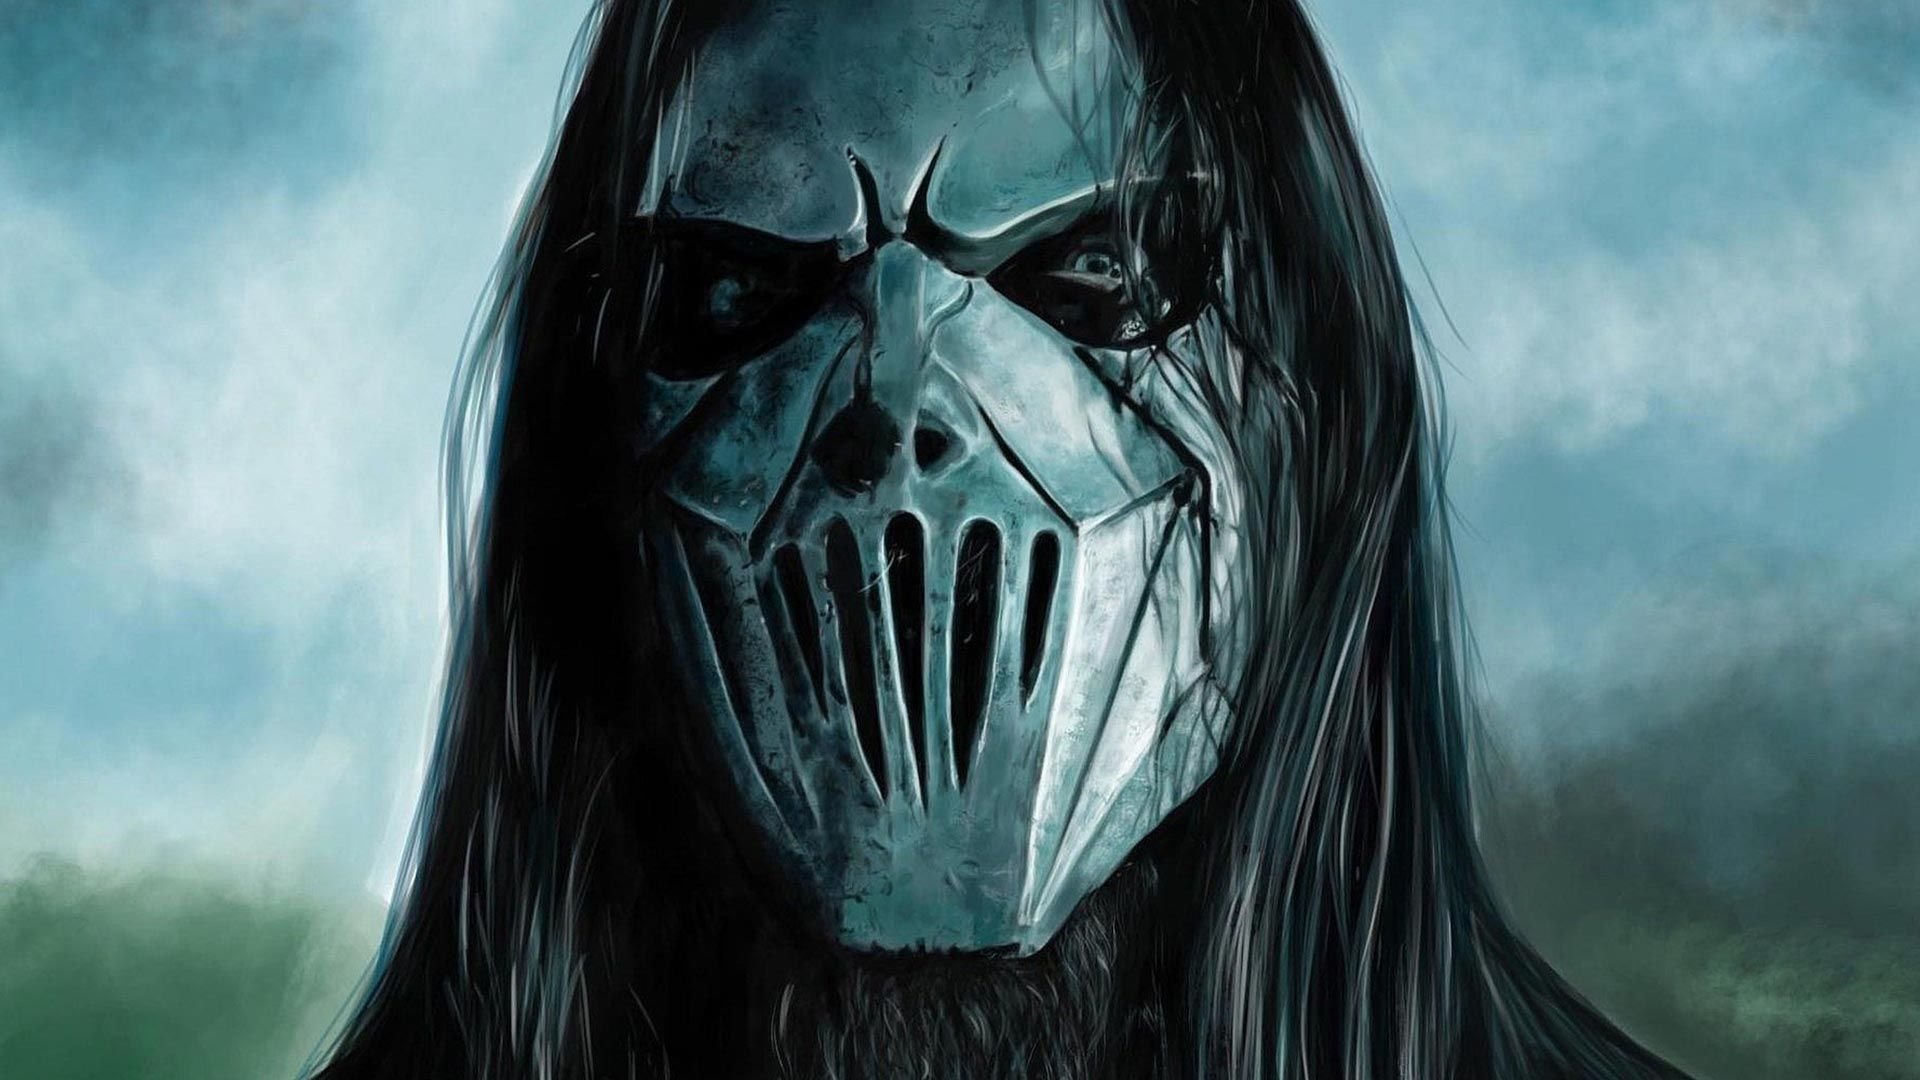 Mick Thomson Slipknot Music Wallpaper Arte, Artes, 1080p